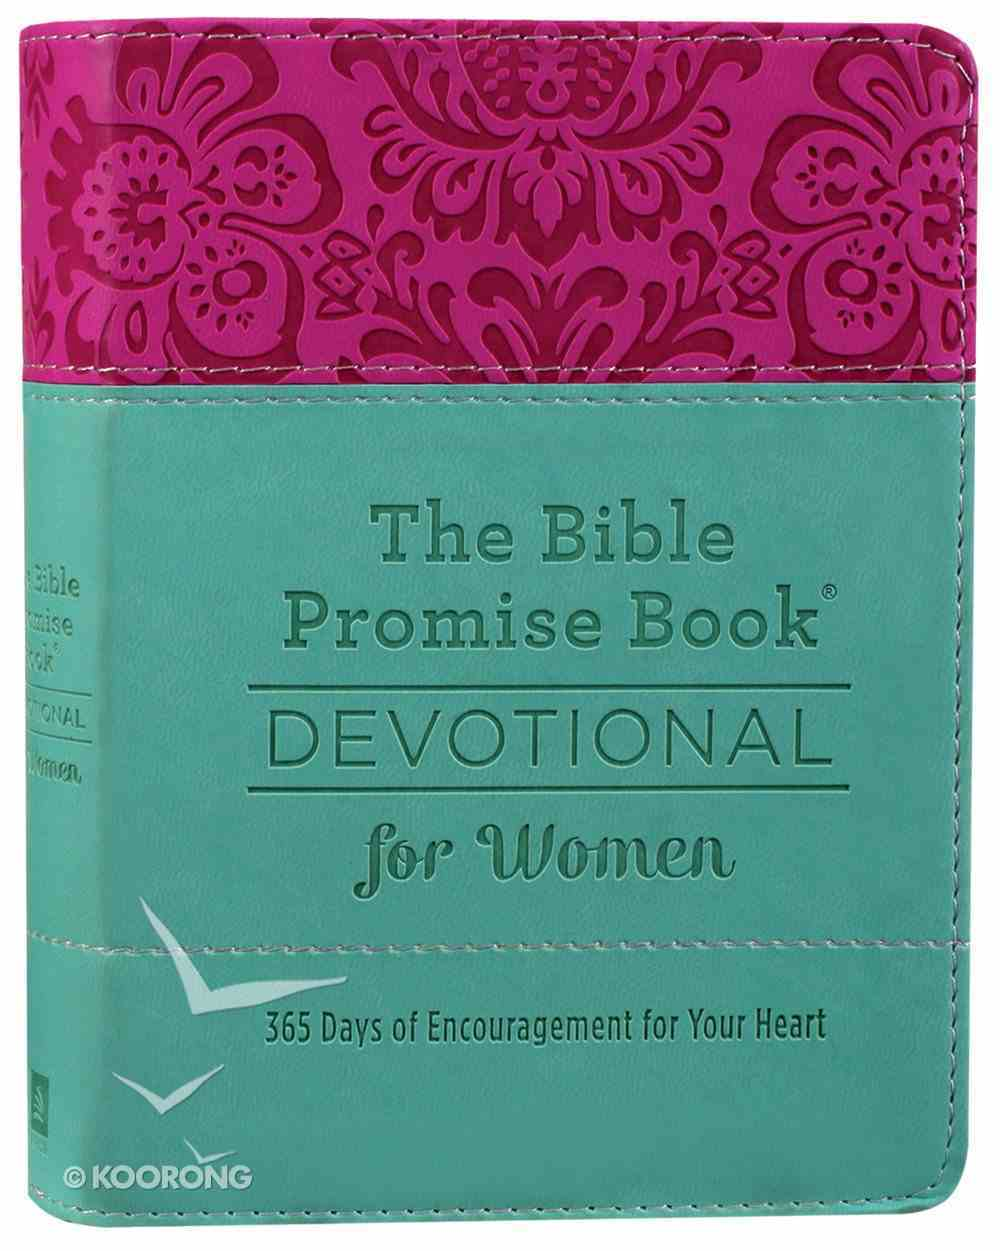 The Bible Promise Book Devotional For Women: 365 Days of Encouragement For Your Heart Imitation Leather